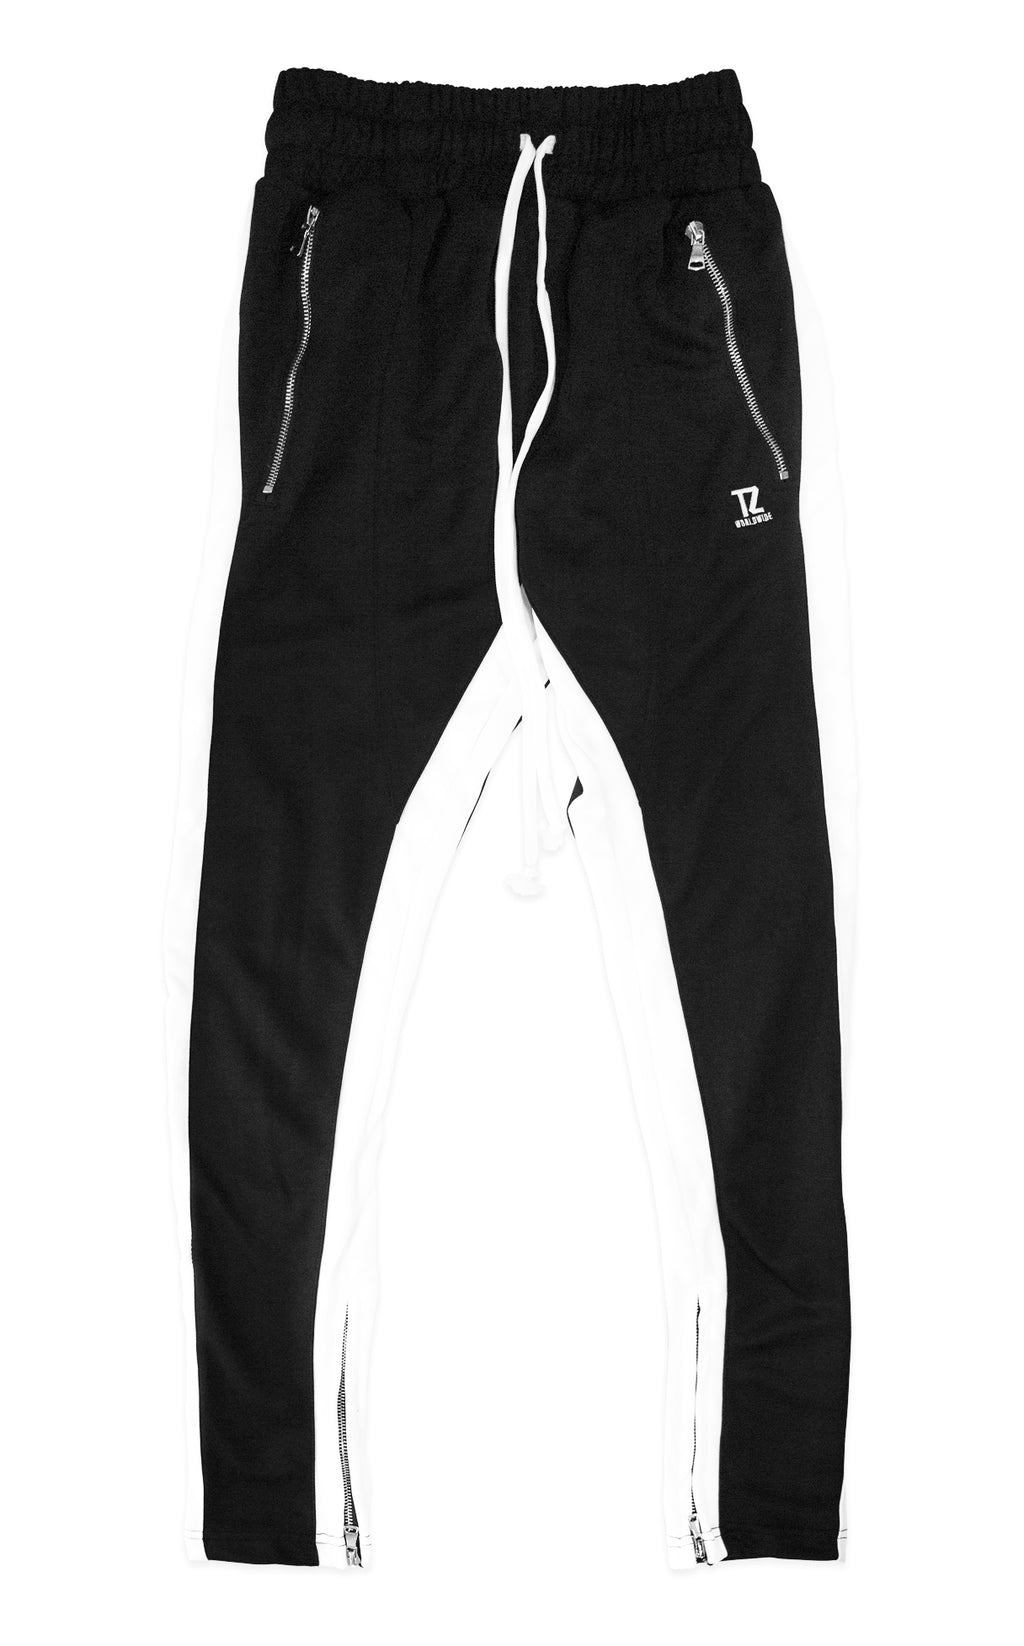 TZ TRACK PANTS (BLACK/WHITE)